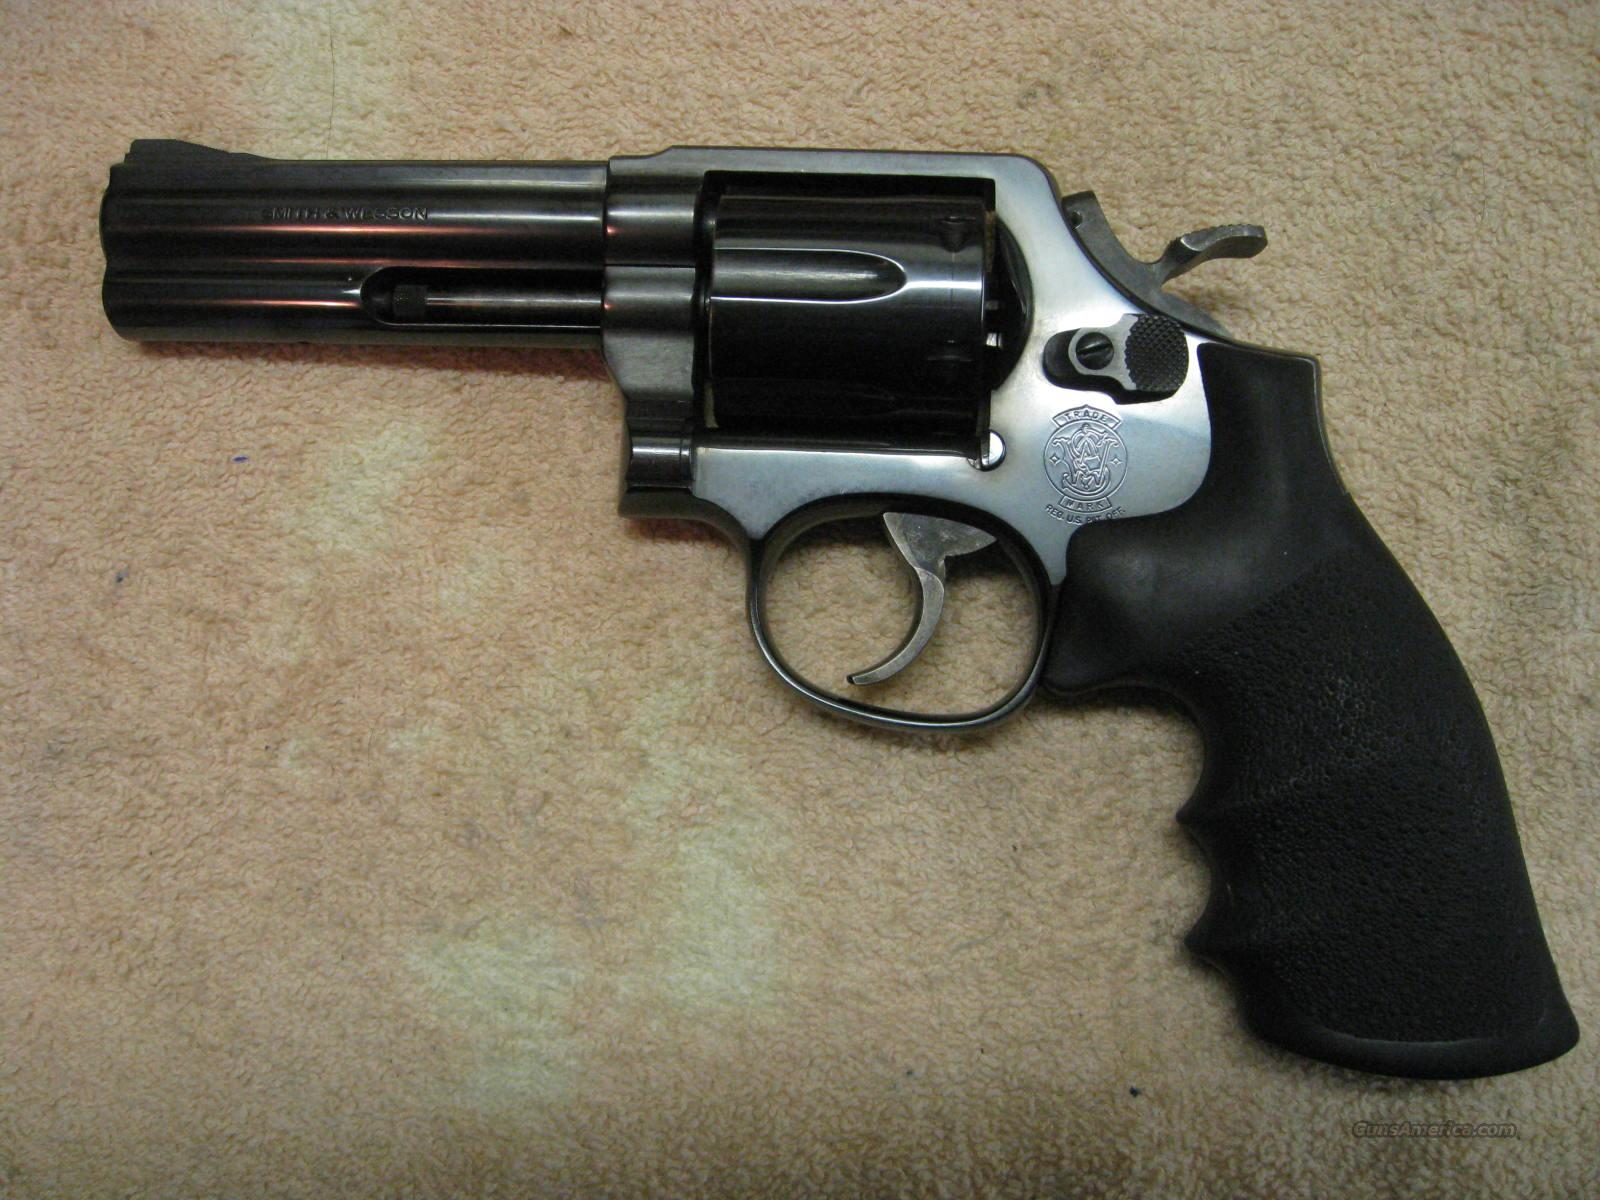 Smith & Wesson Model 581  Guns > Pistols > Smith & Wesson Revolvers > Full Frame Revolver